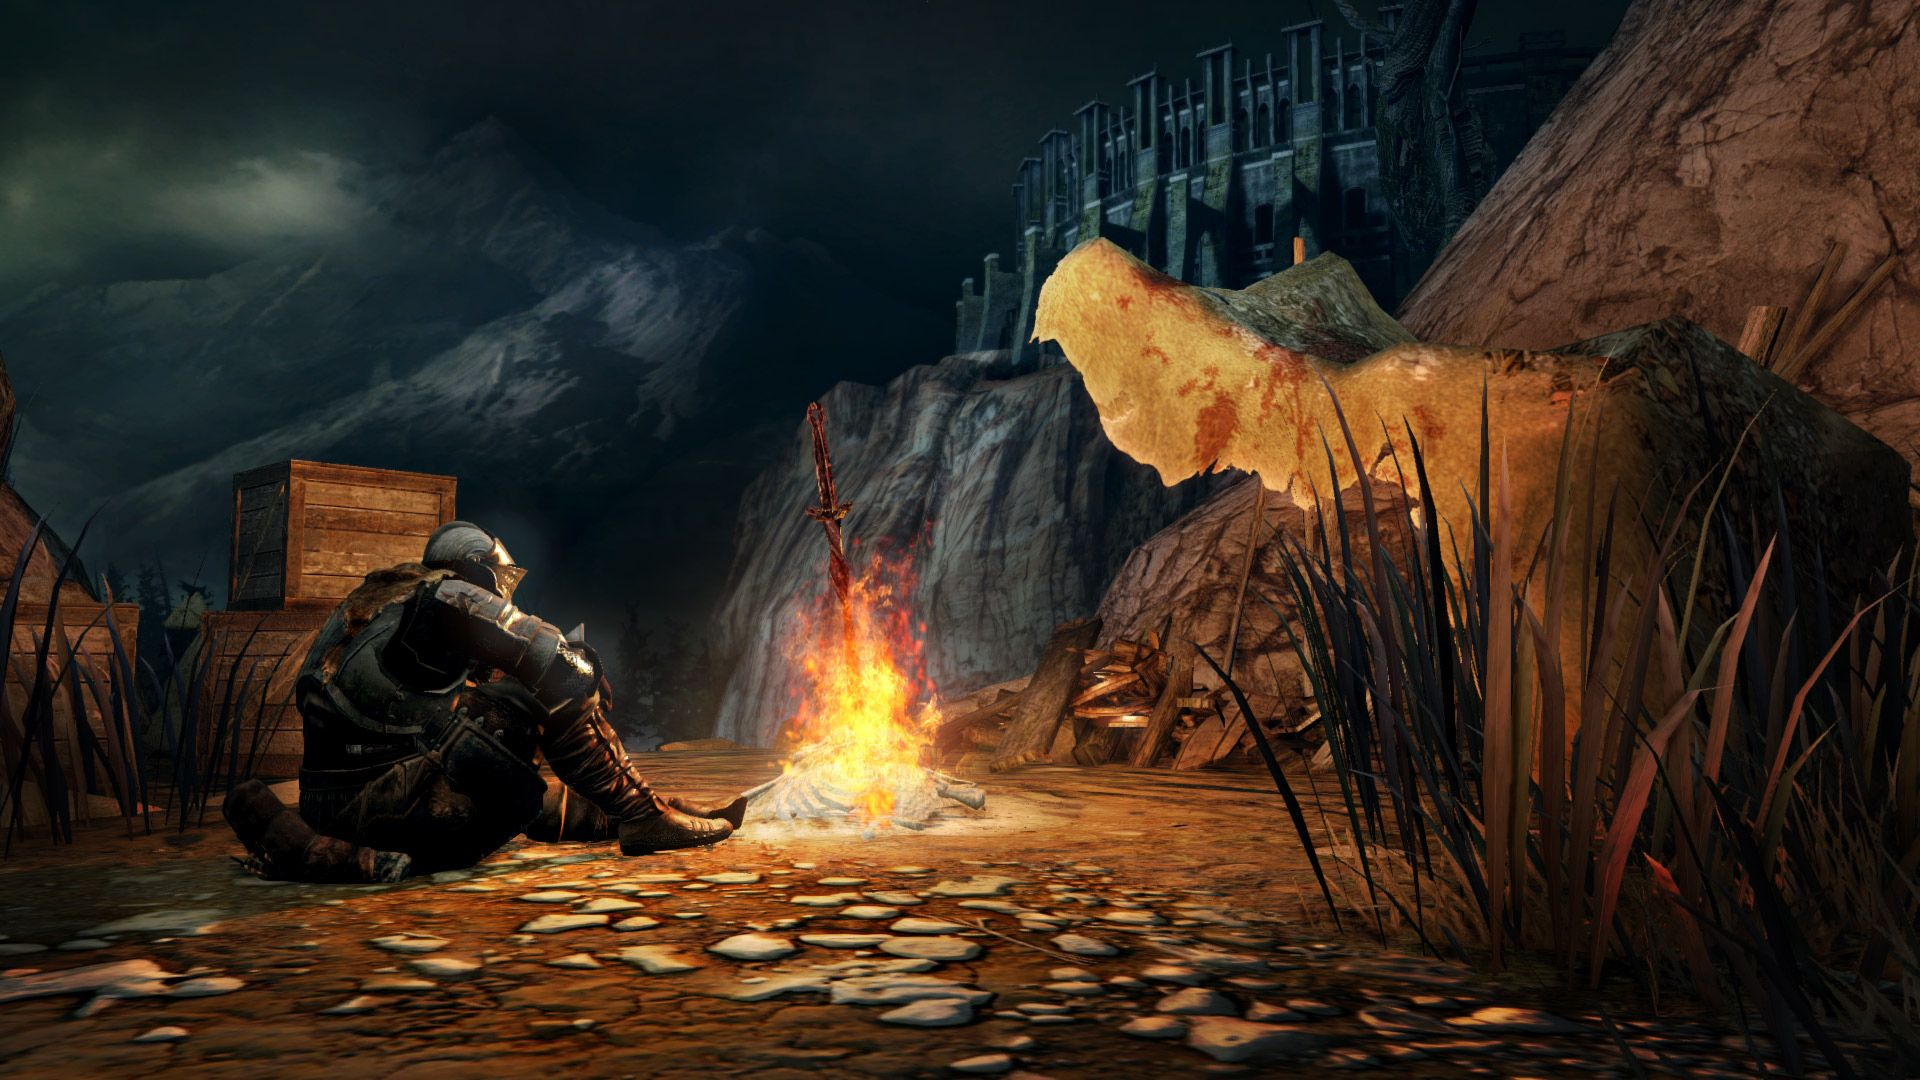 Dark Souls bonfire | Dark Souls | Valiance | Pinterest | Dark souls